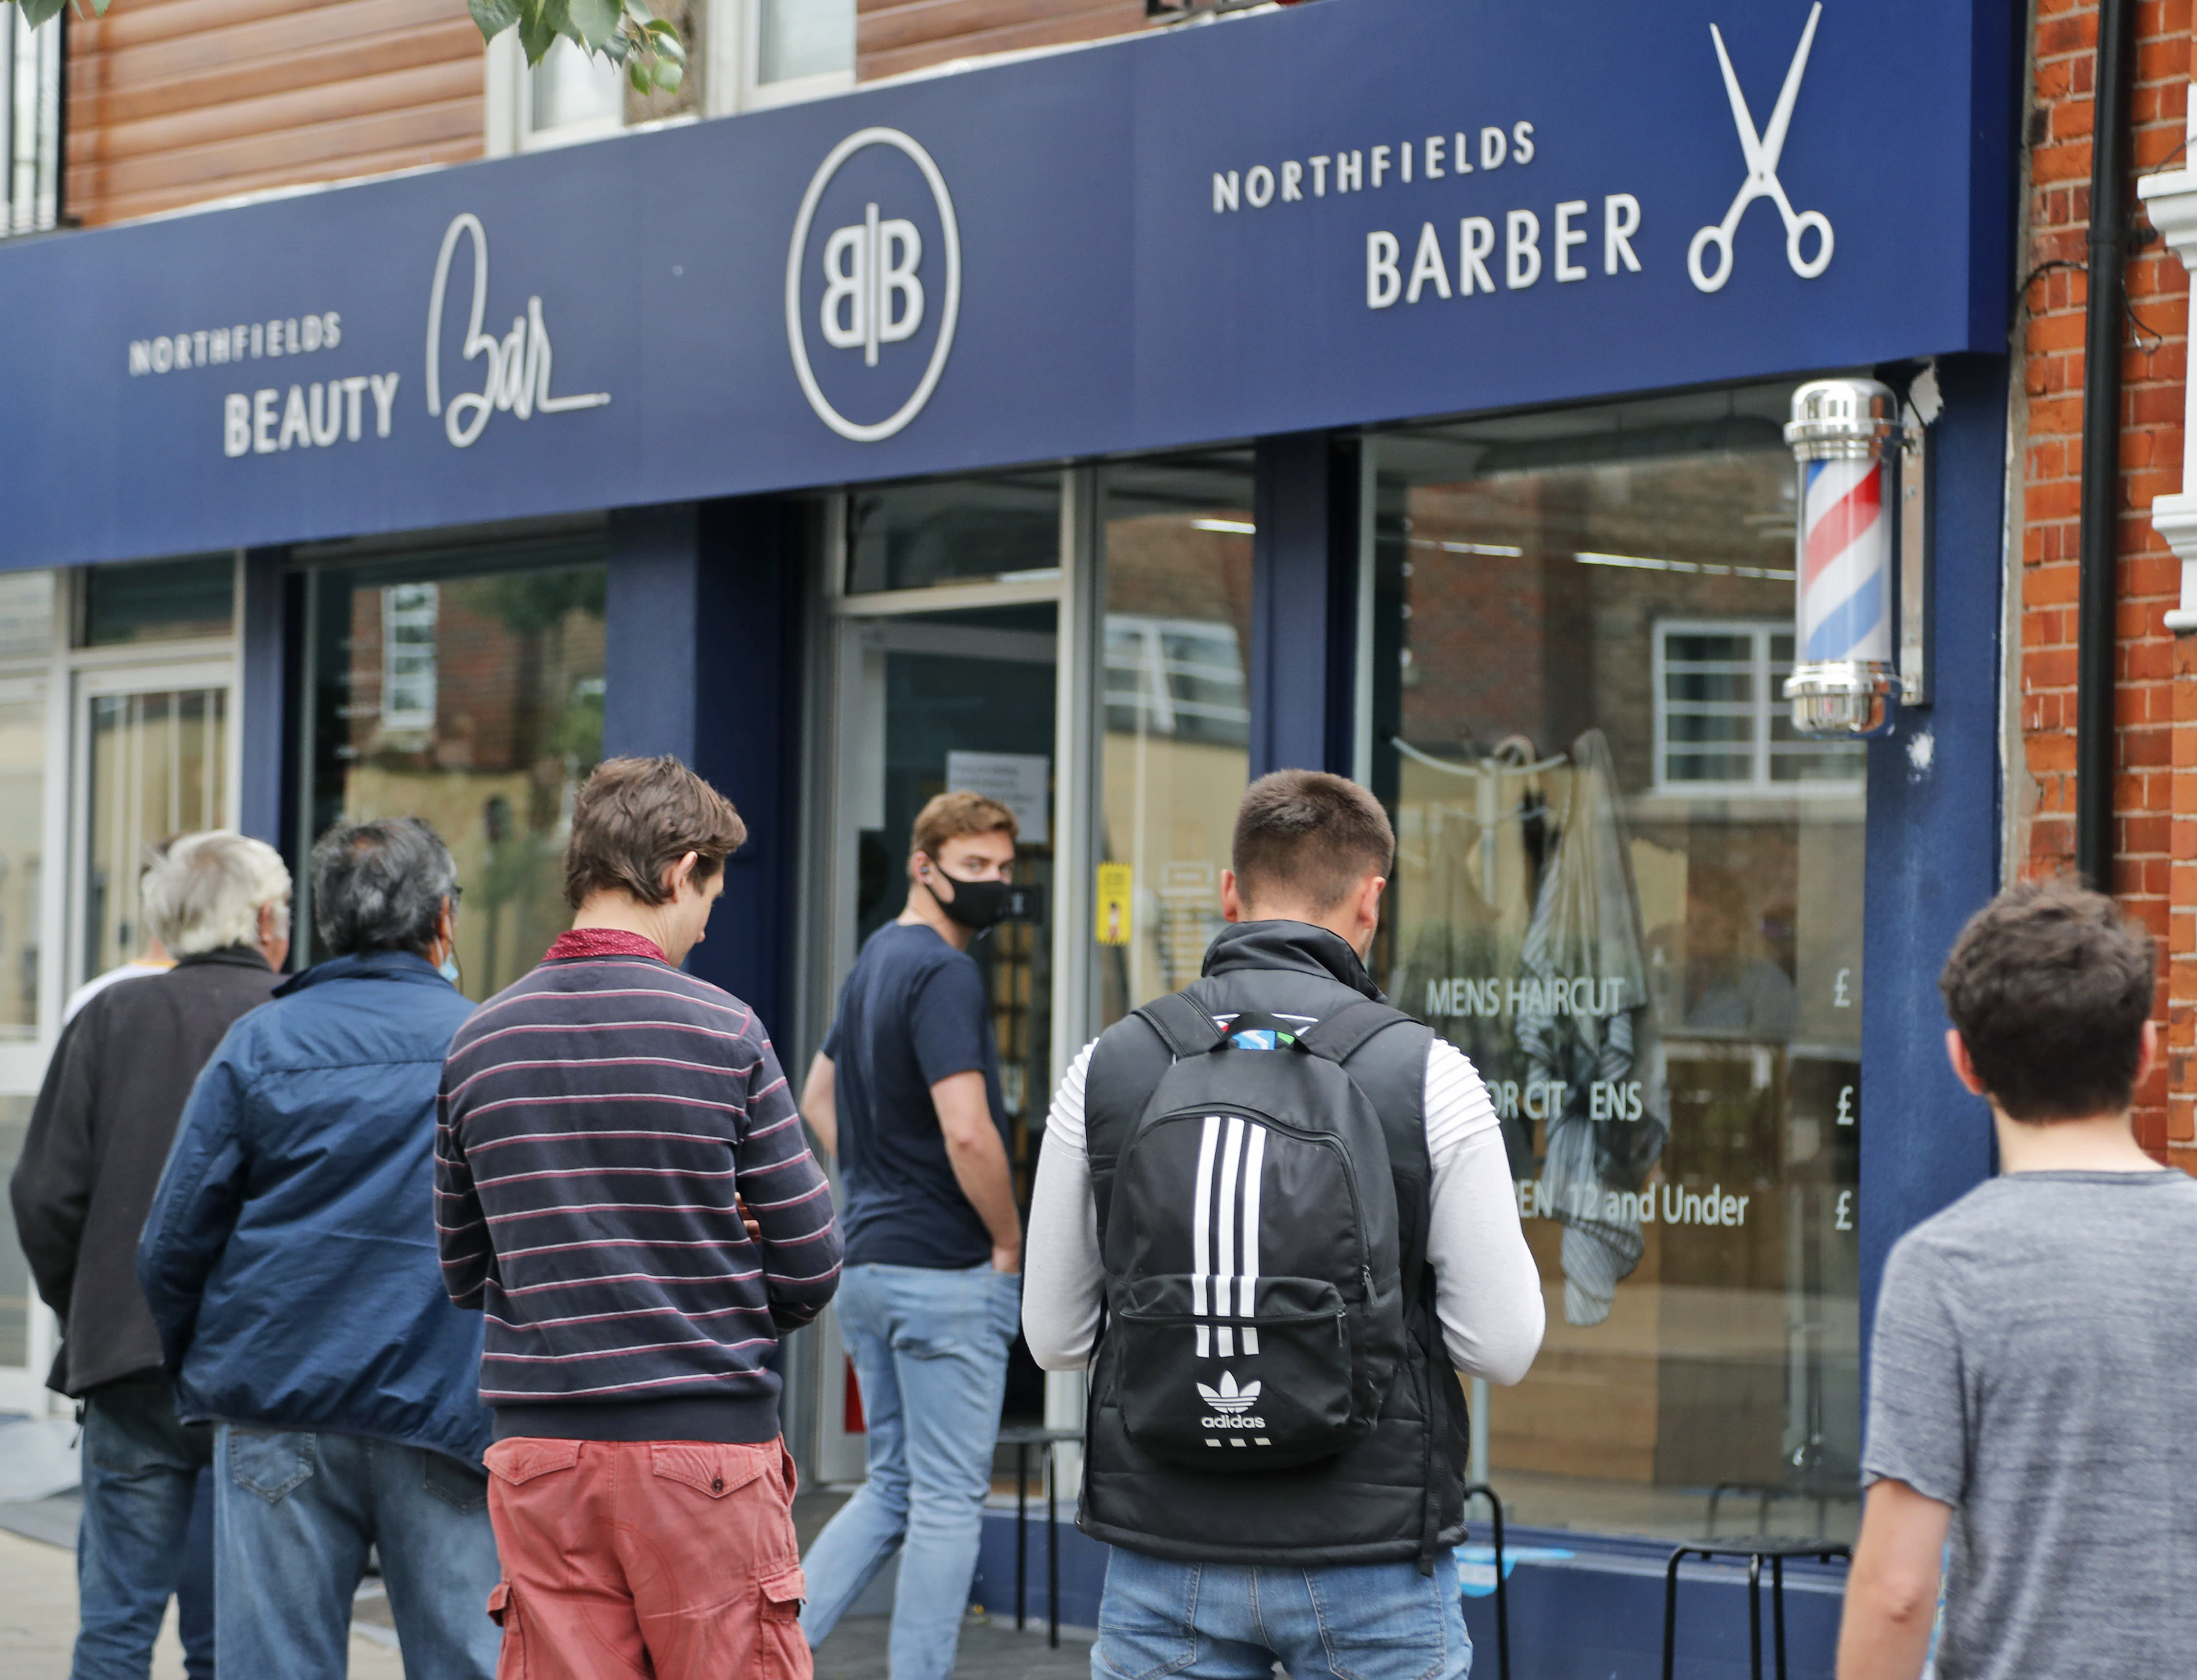 People queue outside Northfields Barber as it opens for the first time after the COVID-19 lockdown in London, Saturday, July 4, 2020. England is embarking on perhaps its biggest lockdown easing yet as pubs and restaurants have the right to reopen for the first time in more than three months. In addition to the reopening of much of the hospitality sector, couples can tie the knot once again, while many of those who have had enough of their lockdown hair can finally get a trim. (AP Photo/Frank Augstein)